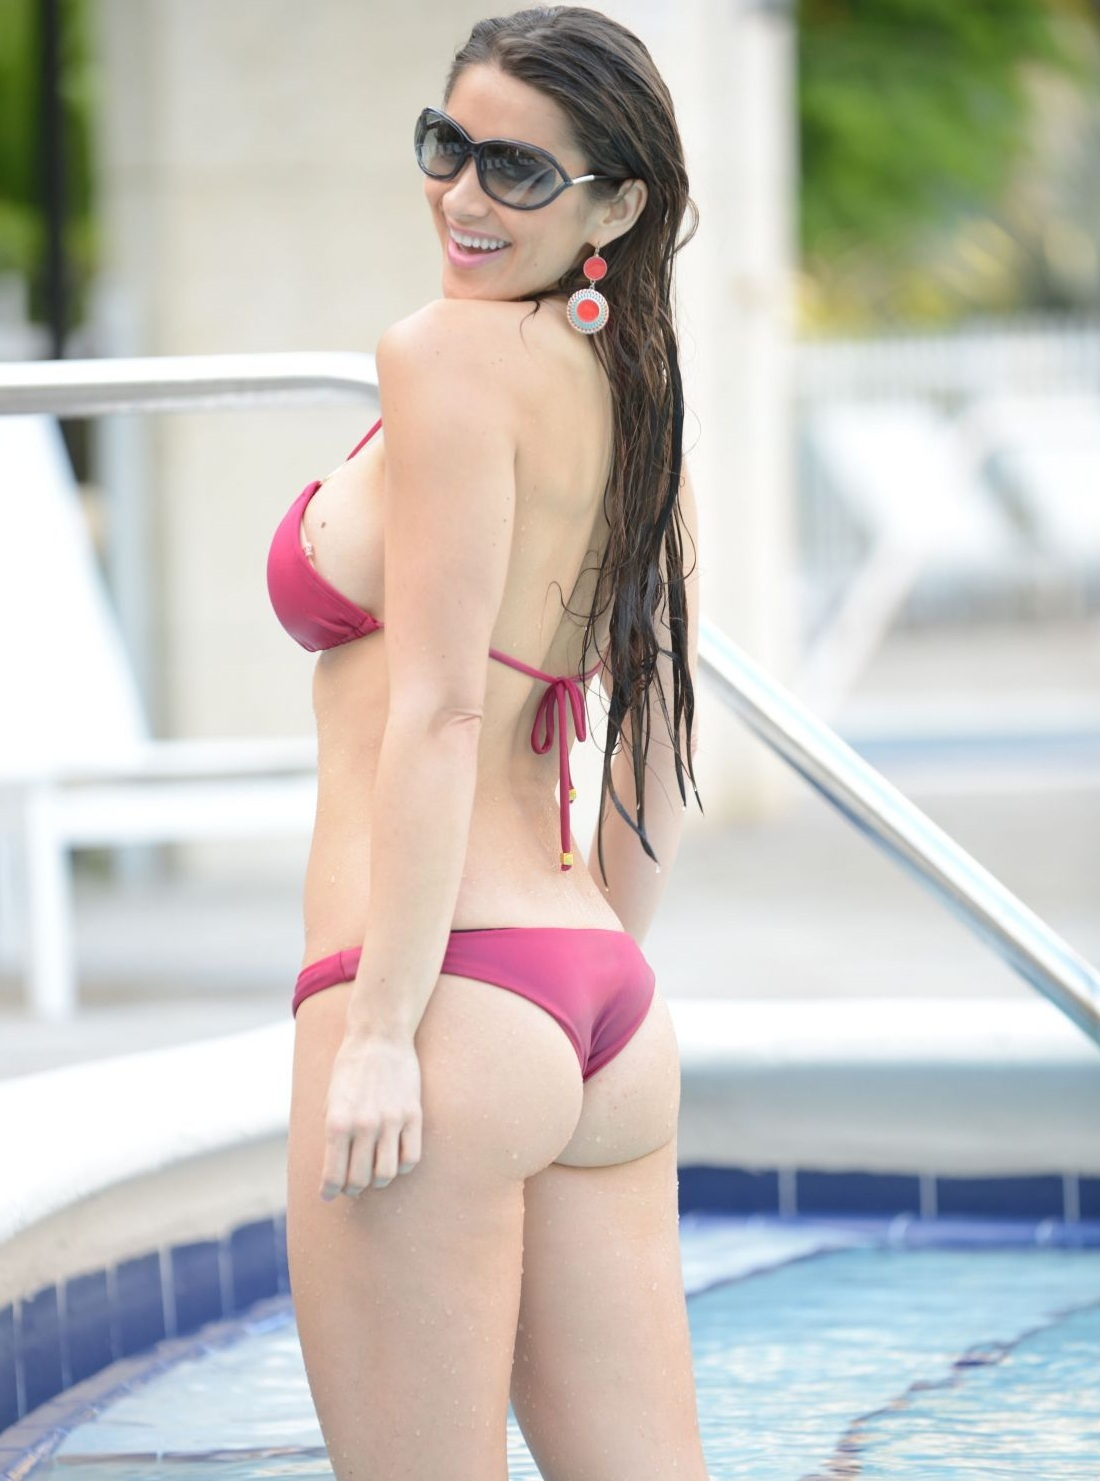 anais-zanotti-in-bikini-at-a-pool-in-miami_12.jpg - 246.55 KB